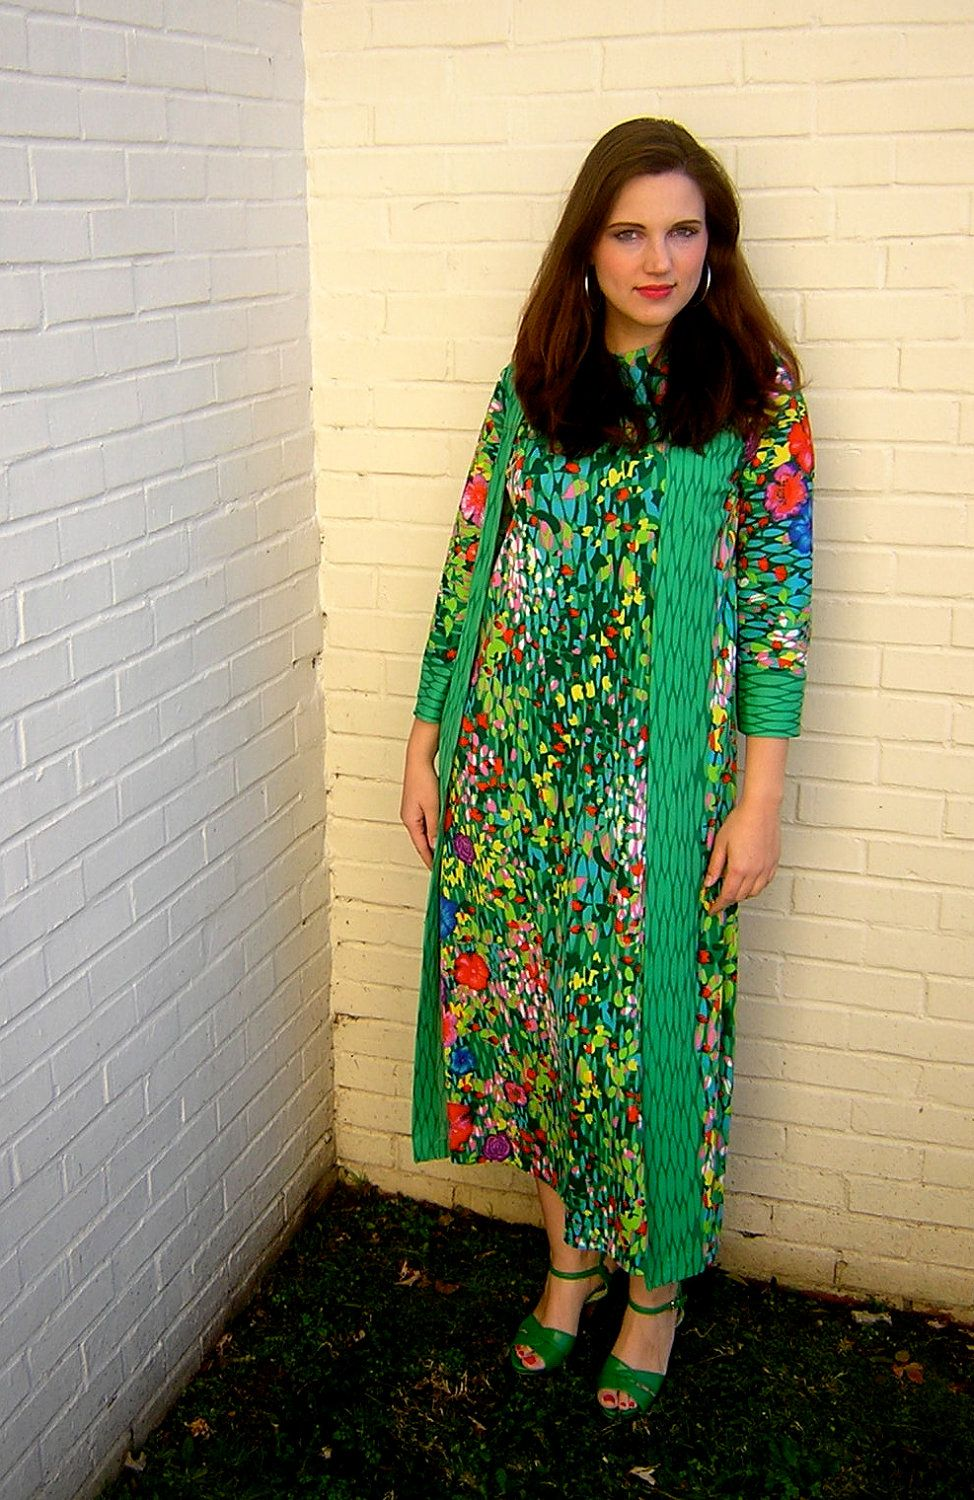 Vintage 1960s retro floral mod wrap / 2-in-1 psychedelic maxi dress / gown. $158.00, via Etsy.